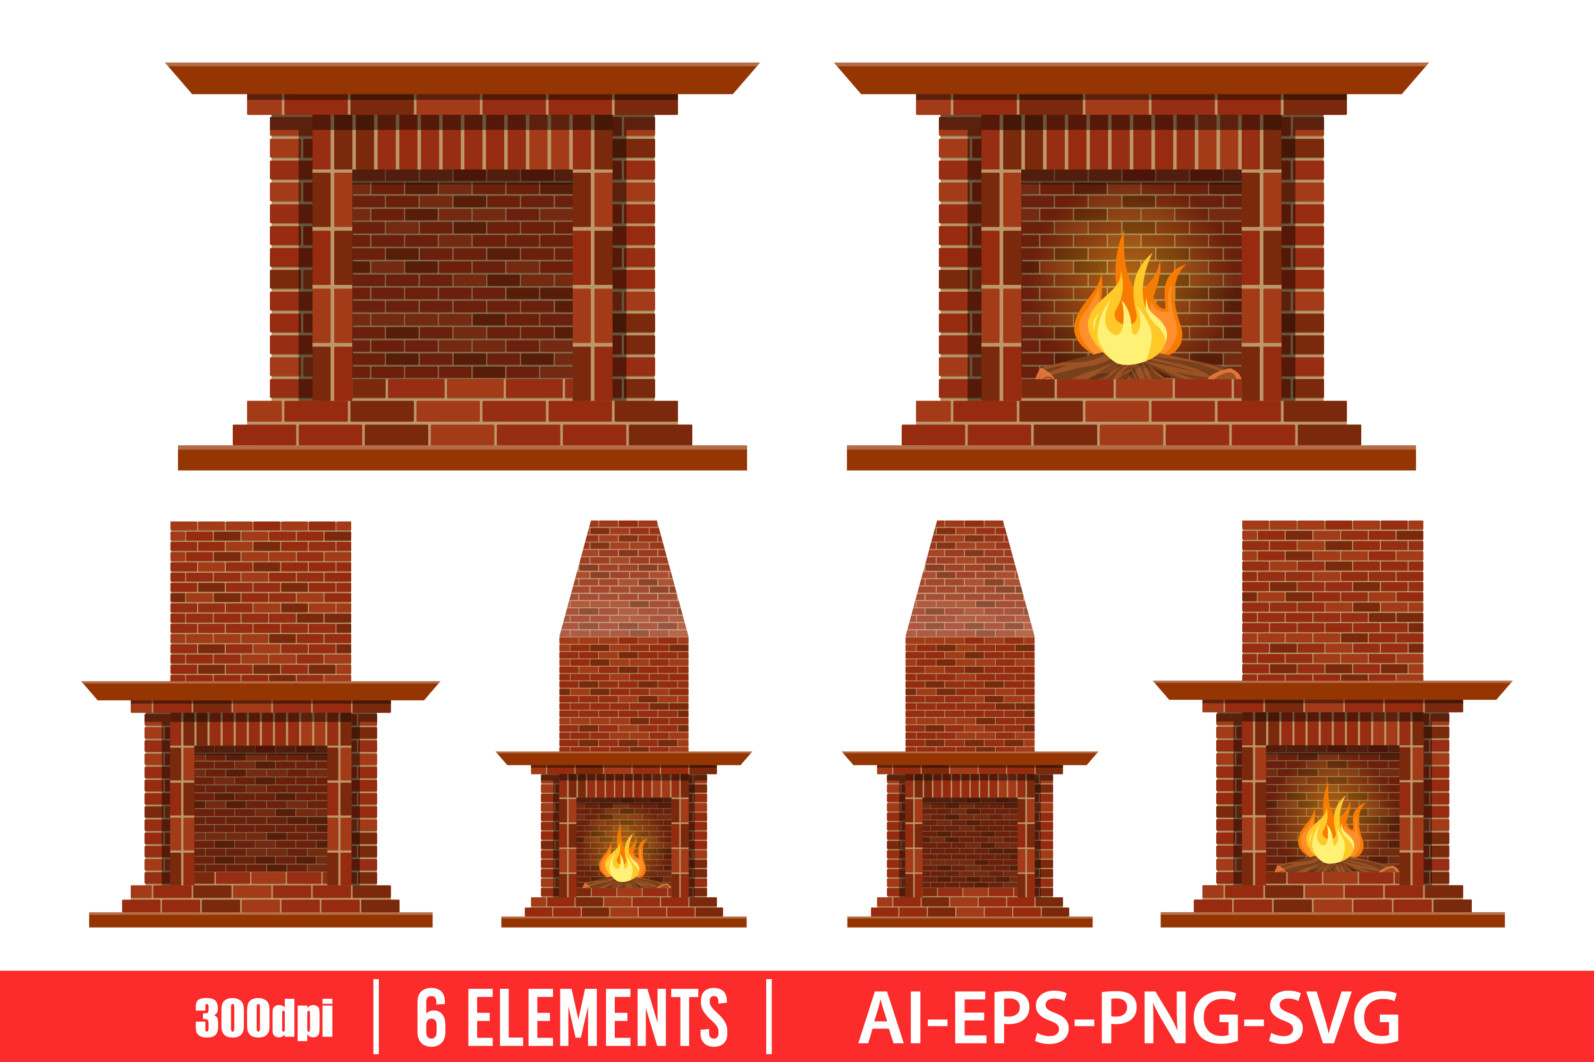 Vintage brick fireplace clipart vector design illustration. Fireplace set. Vector Clipart Print - FIREPLACE scaled -